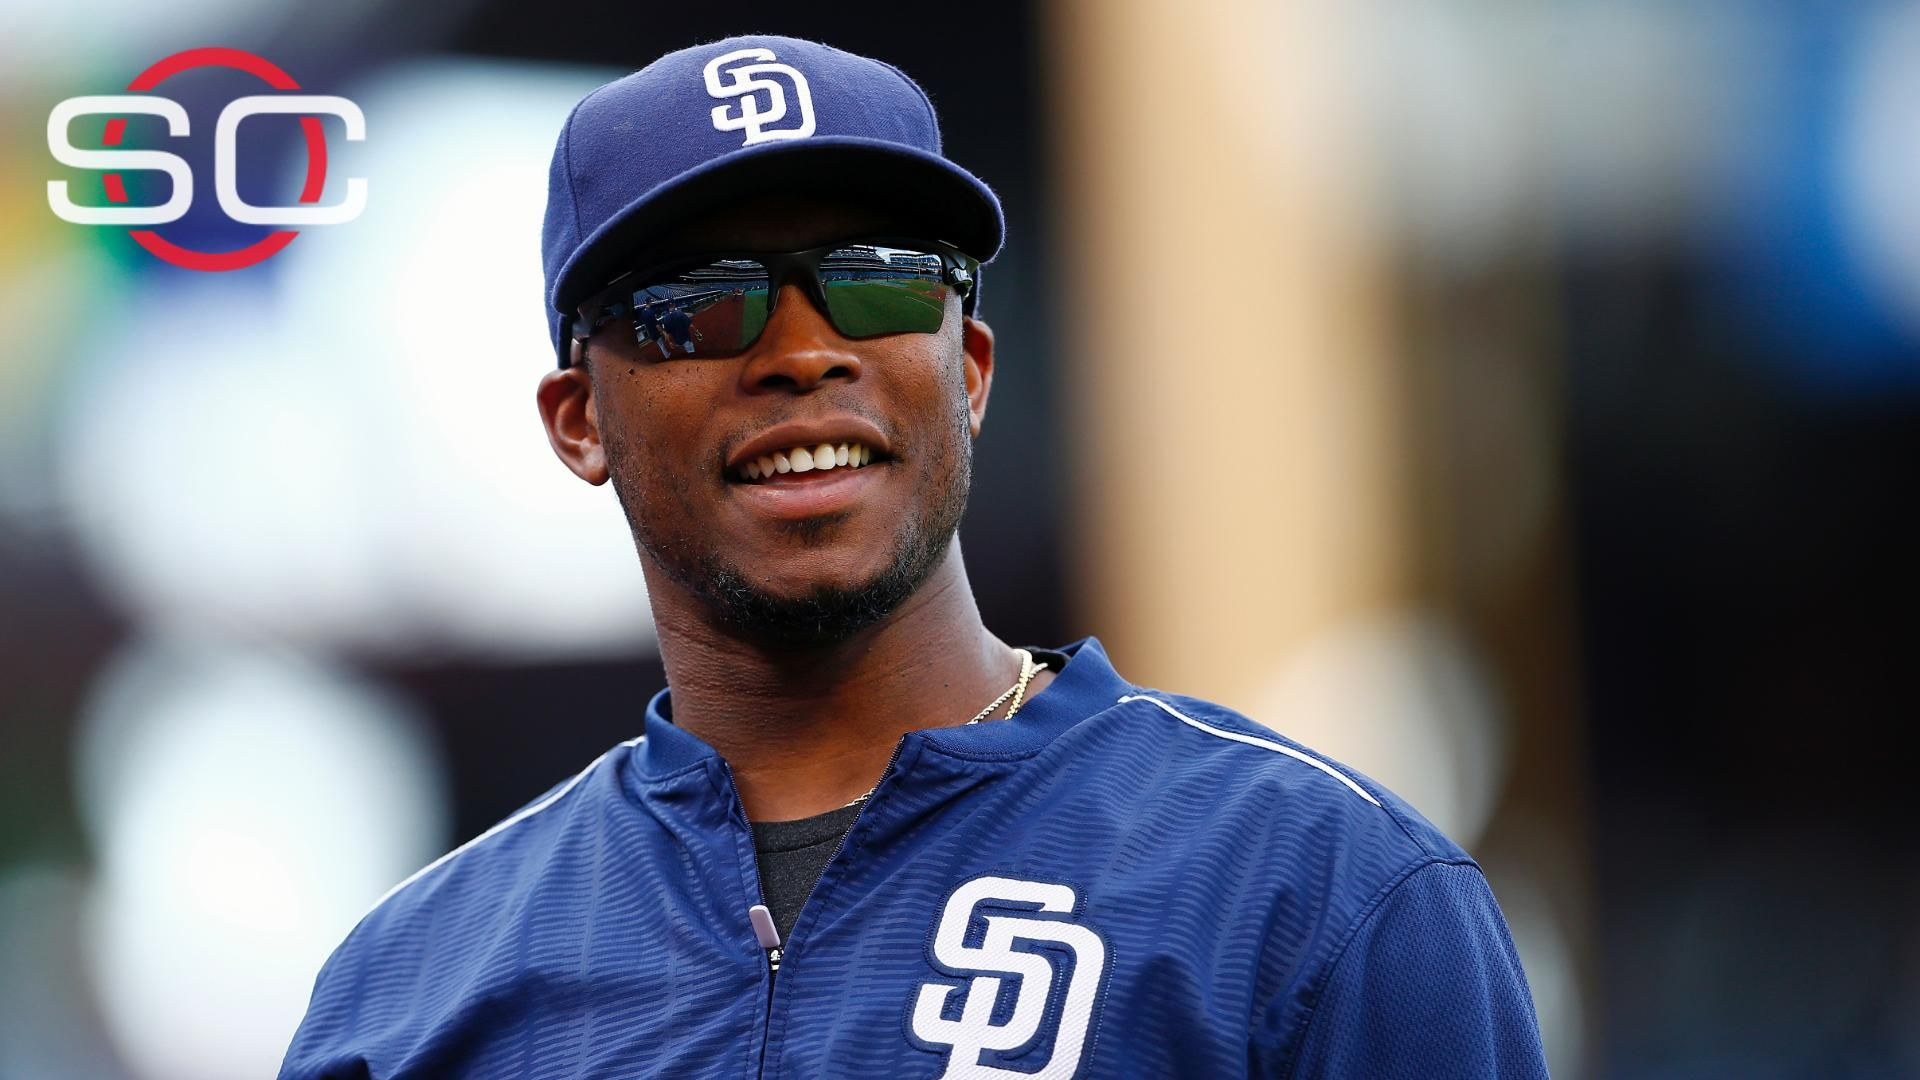 Justin Upton not thinking short-term deal, agent says